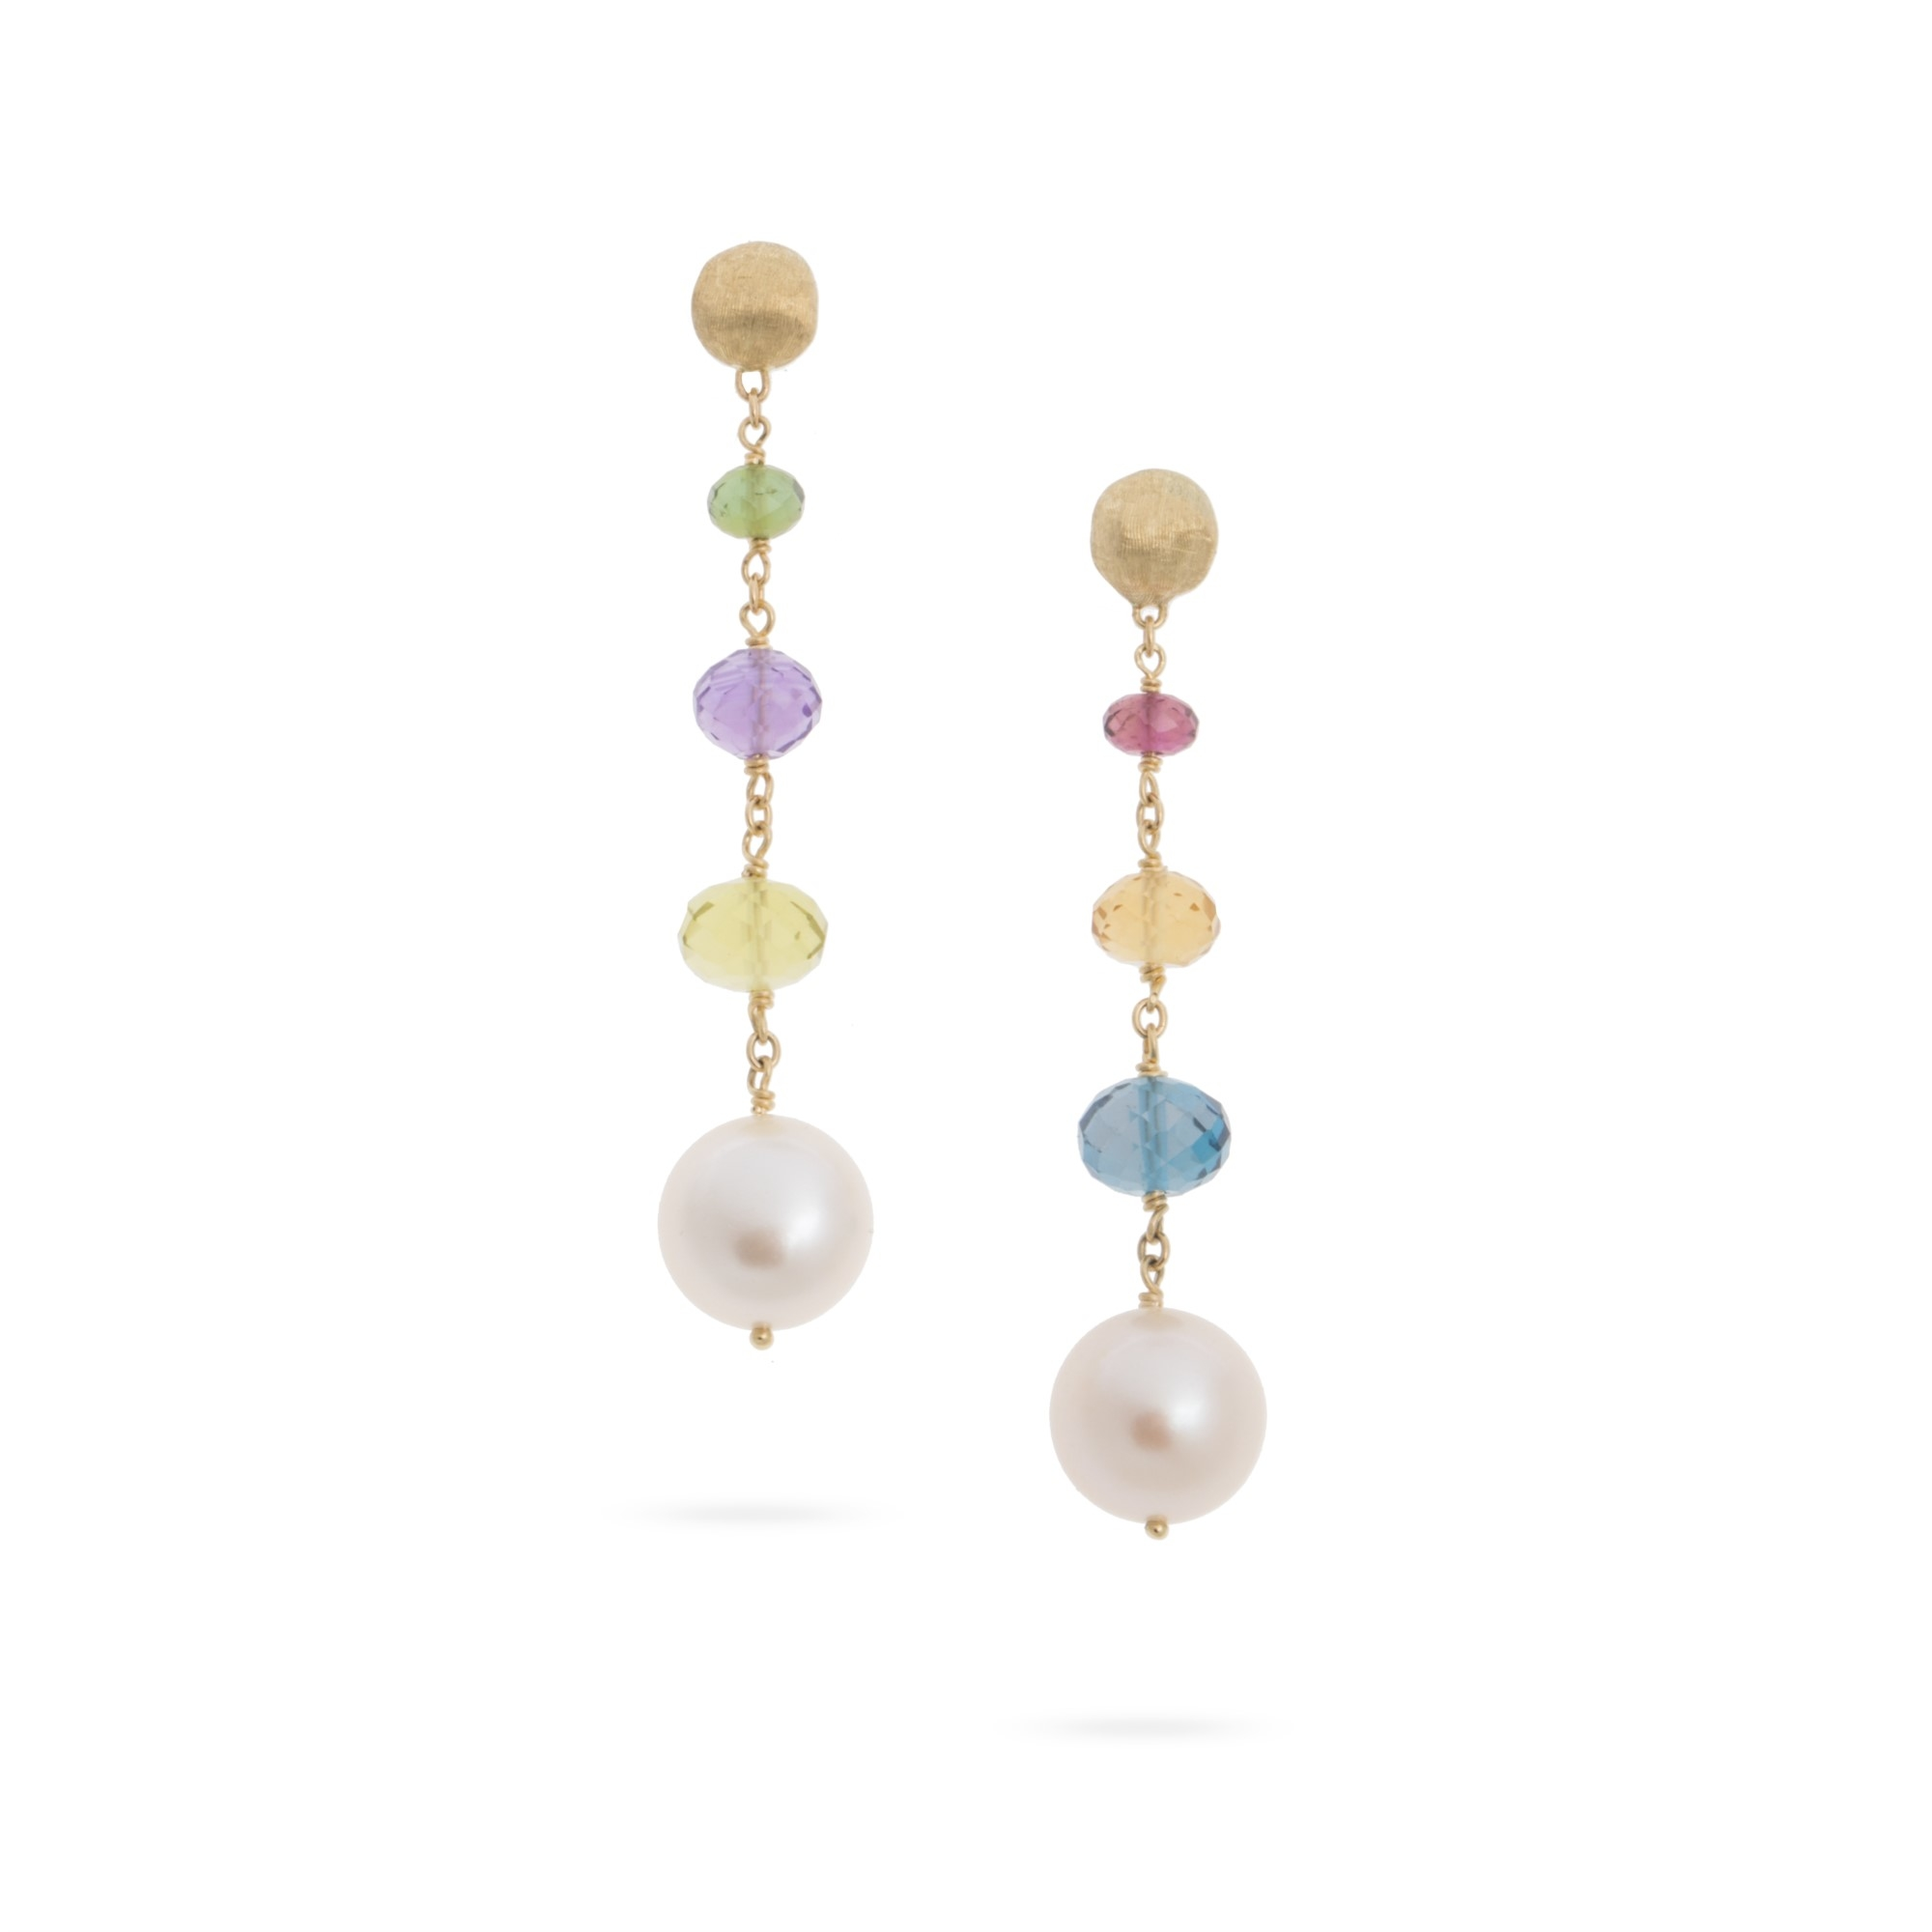 Marco Bicego 18K Yellow Gold   Pearl Gold Earrings with Stones OB1685-PL-MIX02